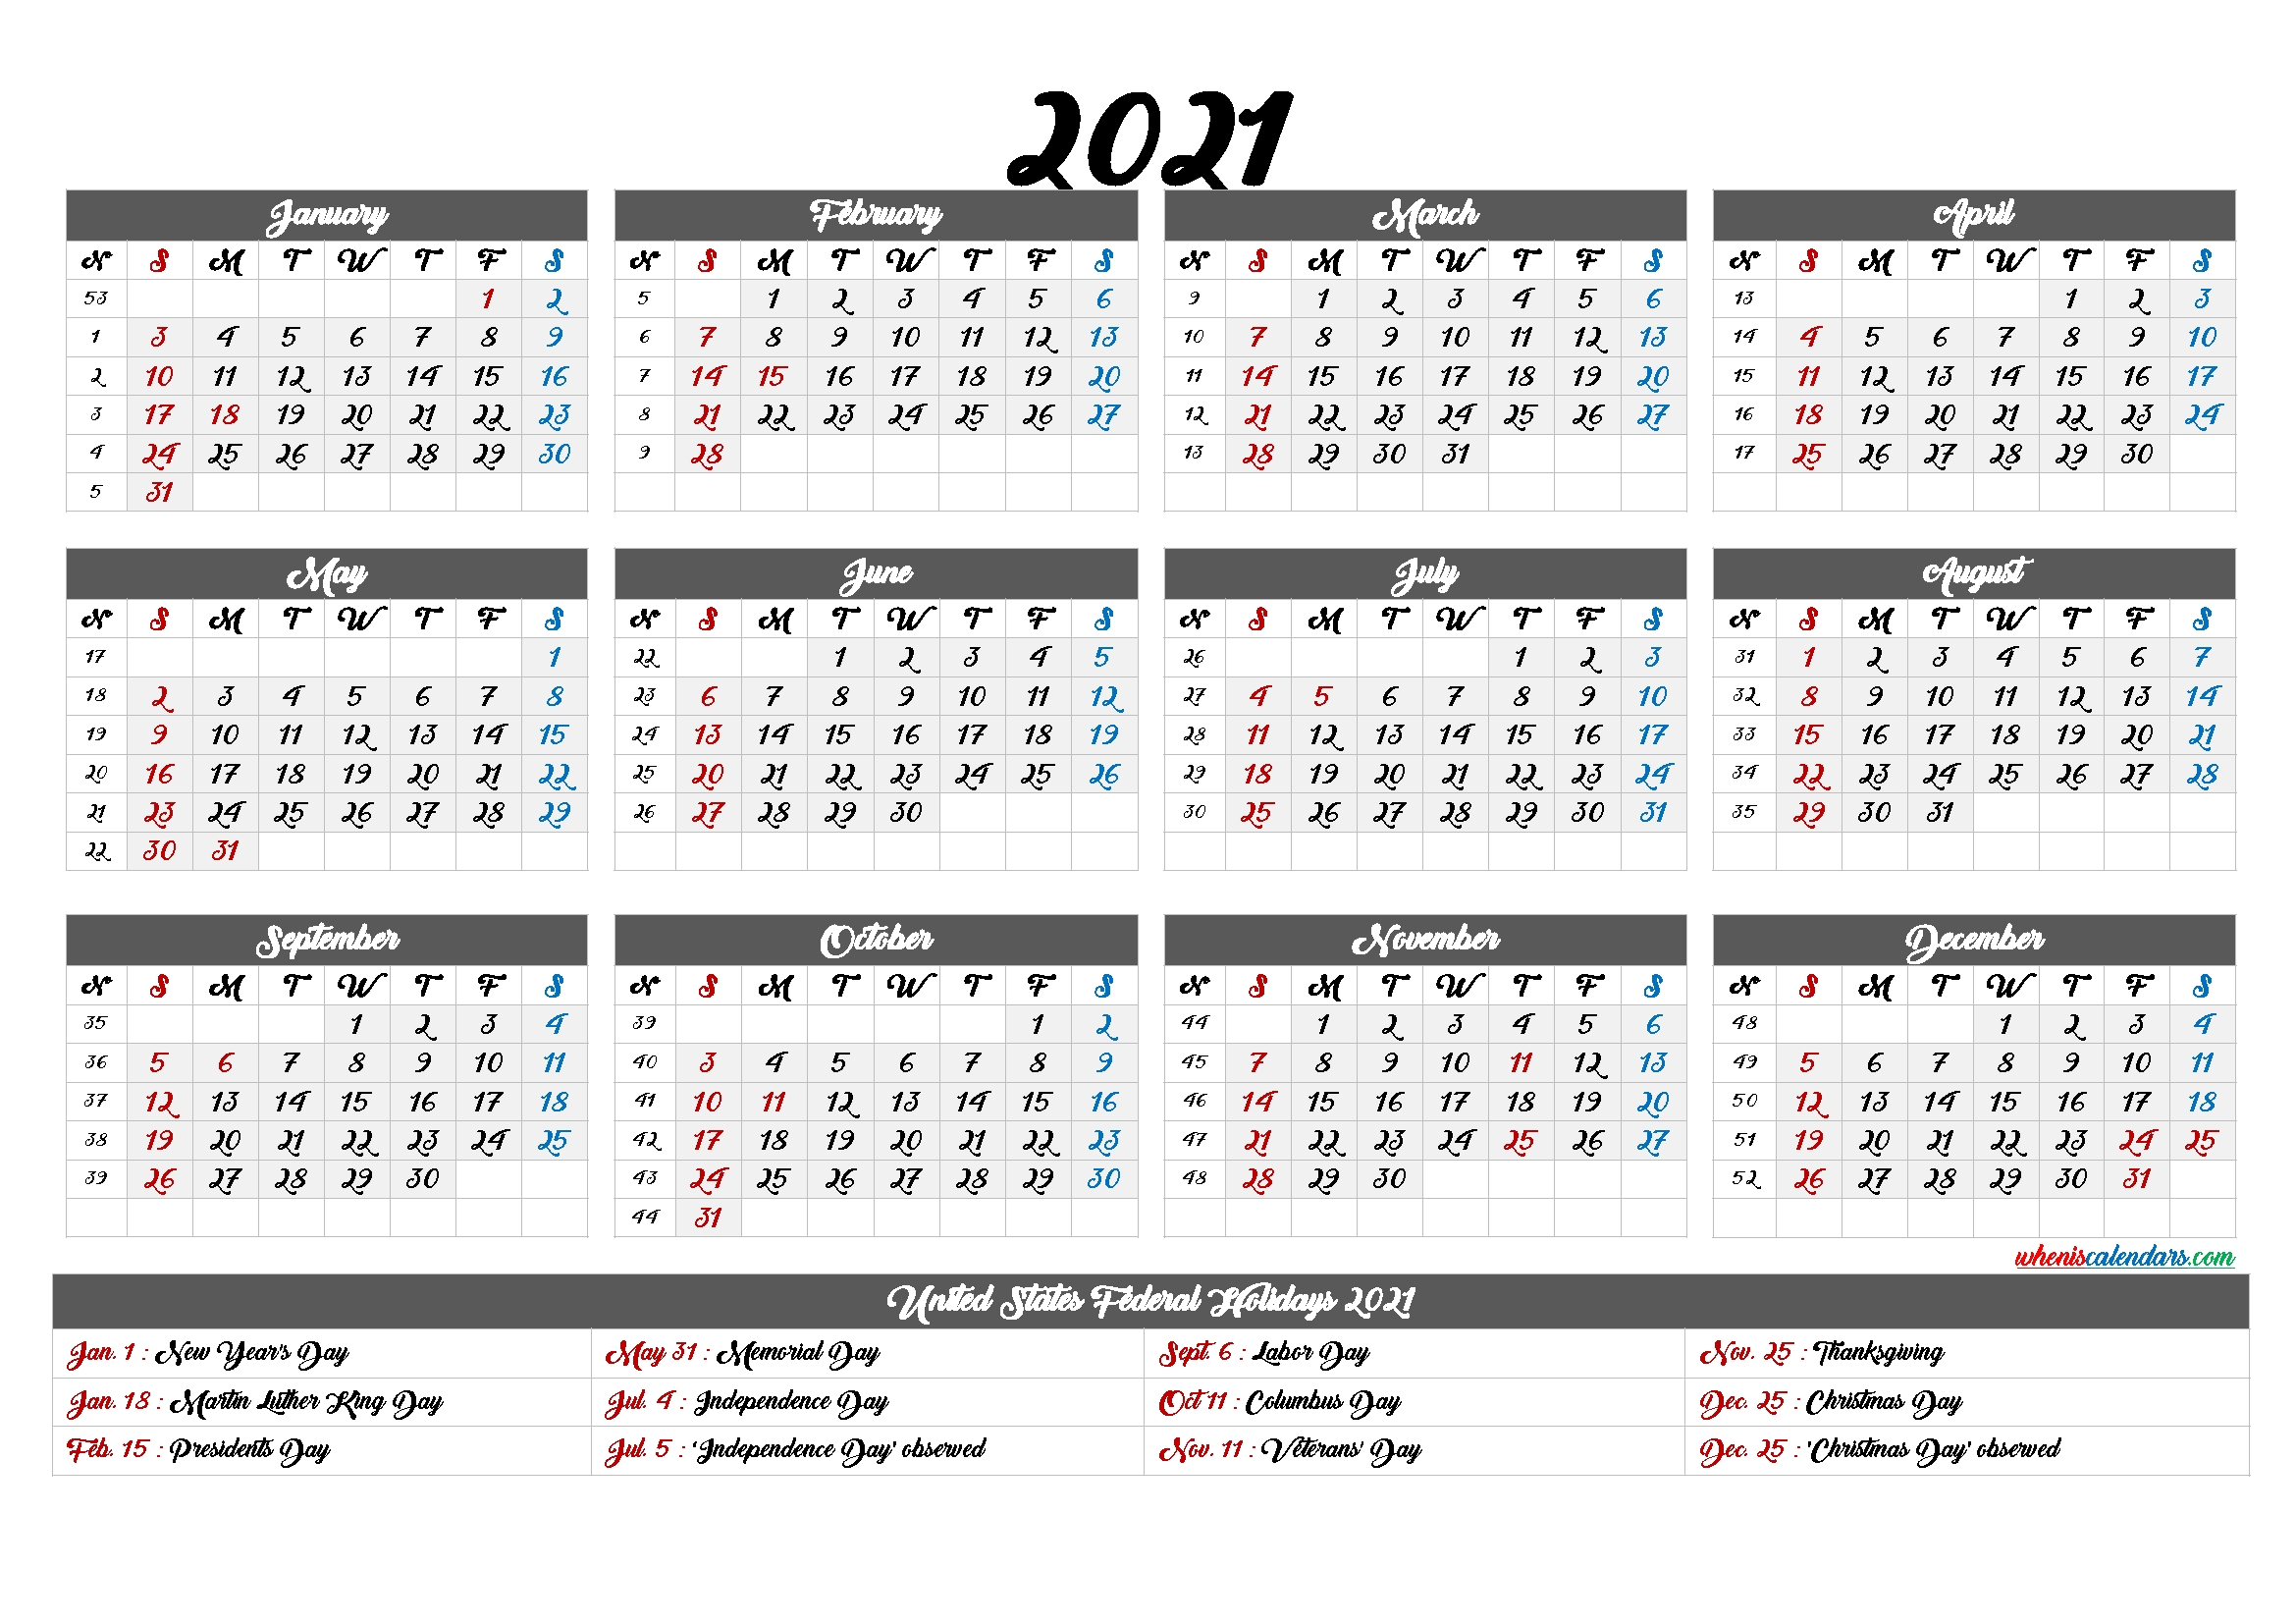 Catch 1St April New Financial Year Calendar Week Numbers